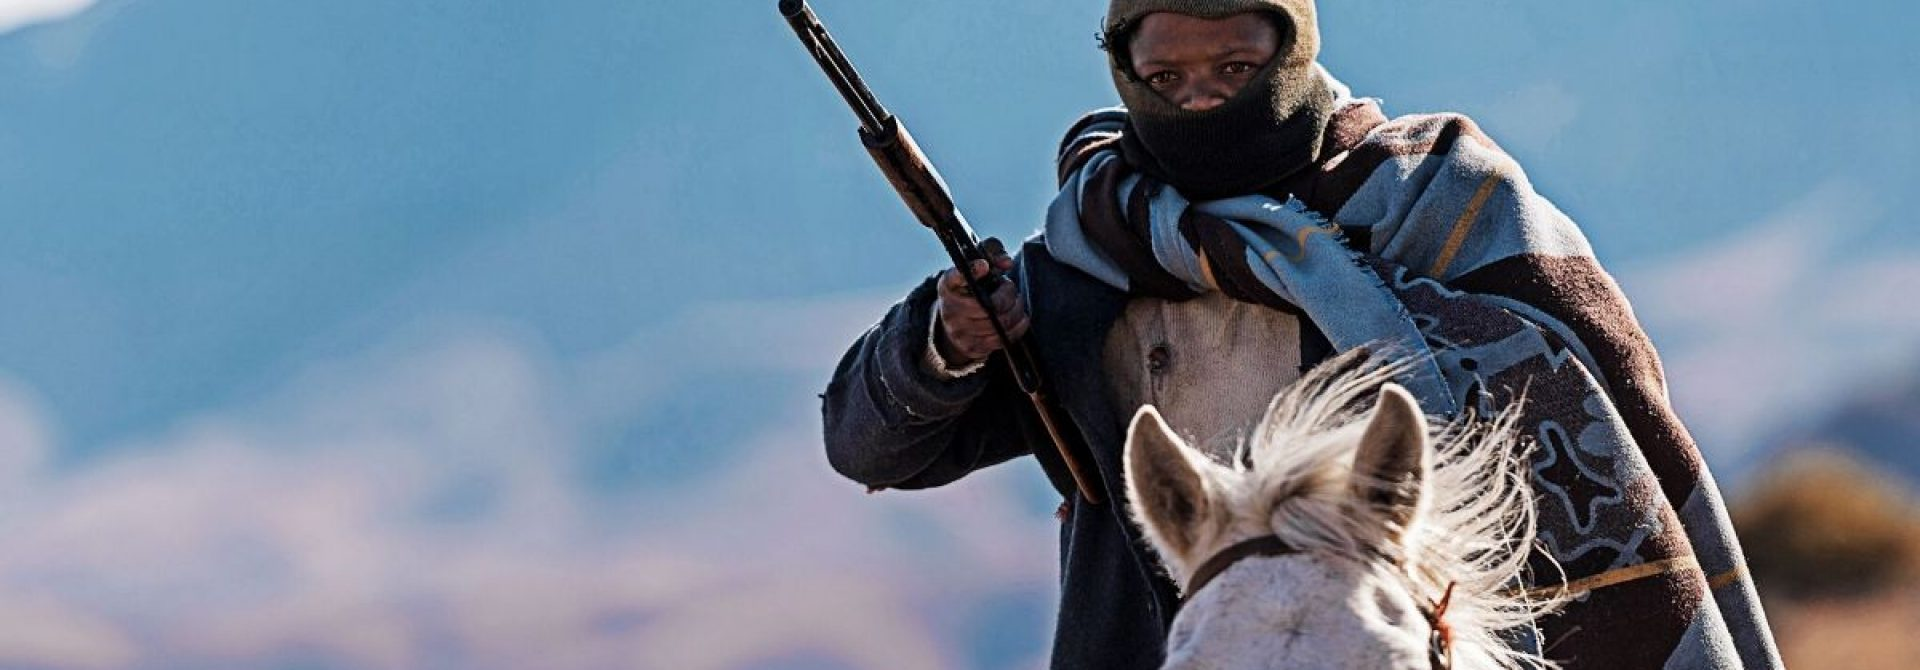 Five Fingers For Marseilles Comes To Theaters In September